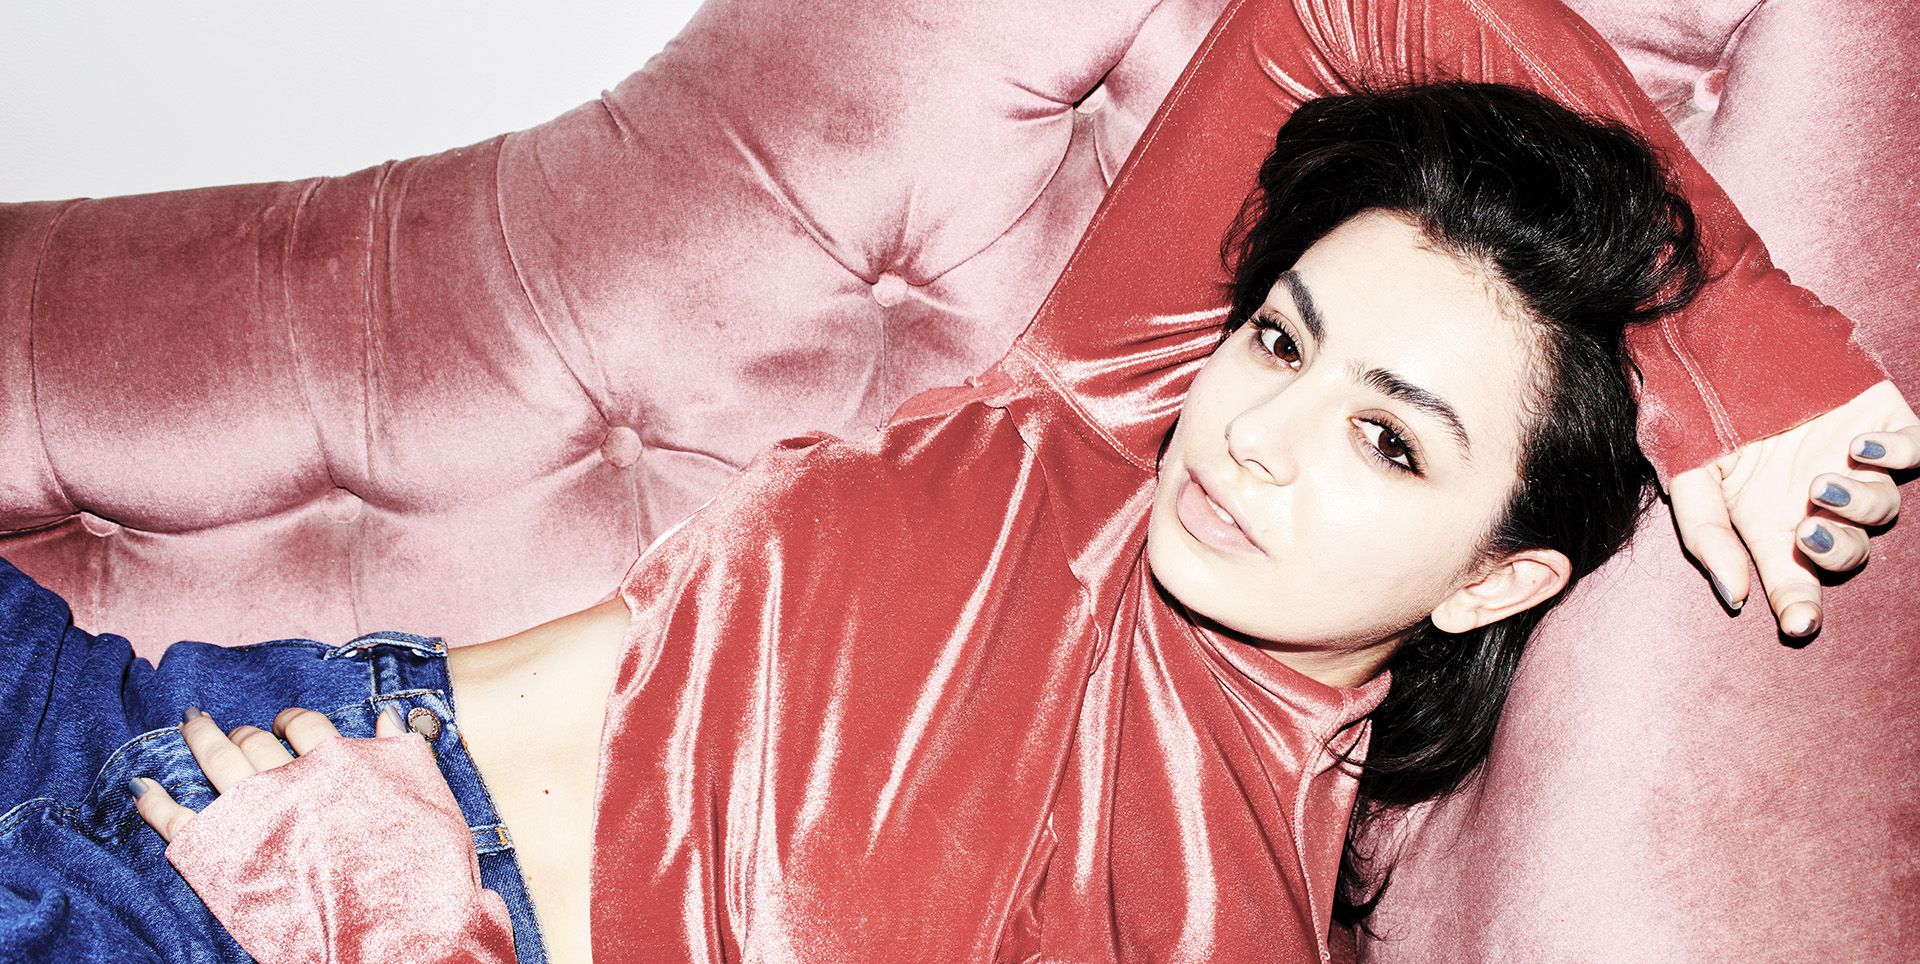 """Exclusive: Listen to an Acoustic Version of Charli XCX's """"Boys"""""""